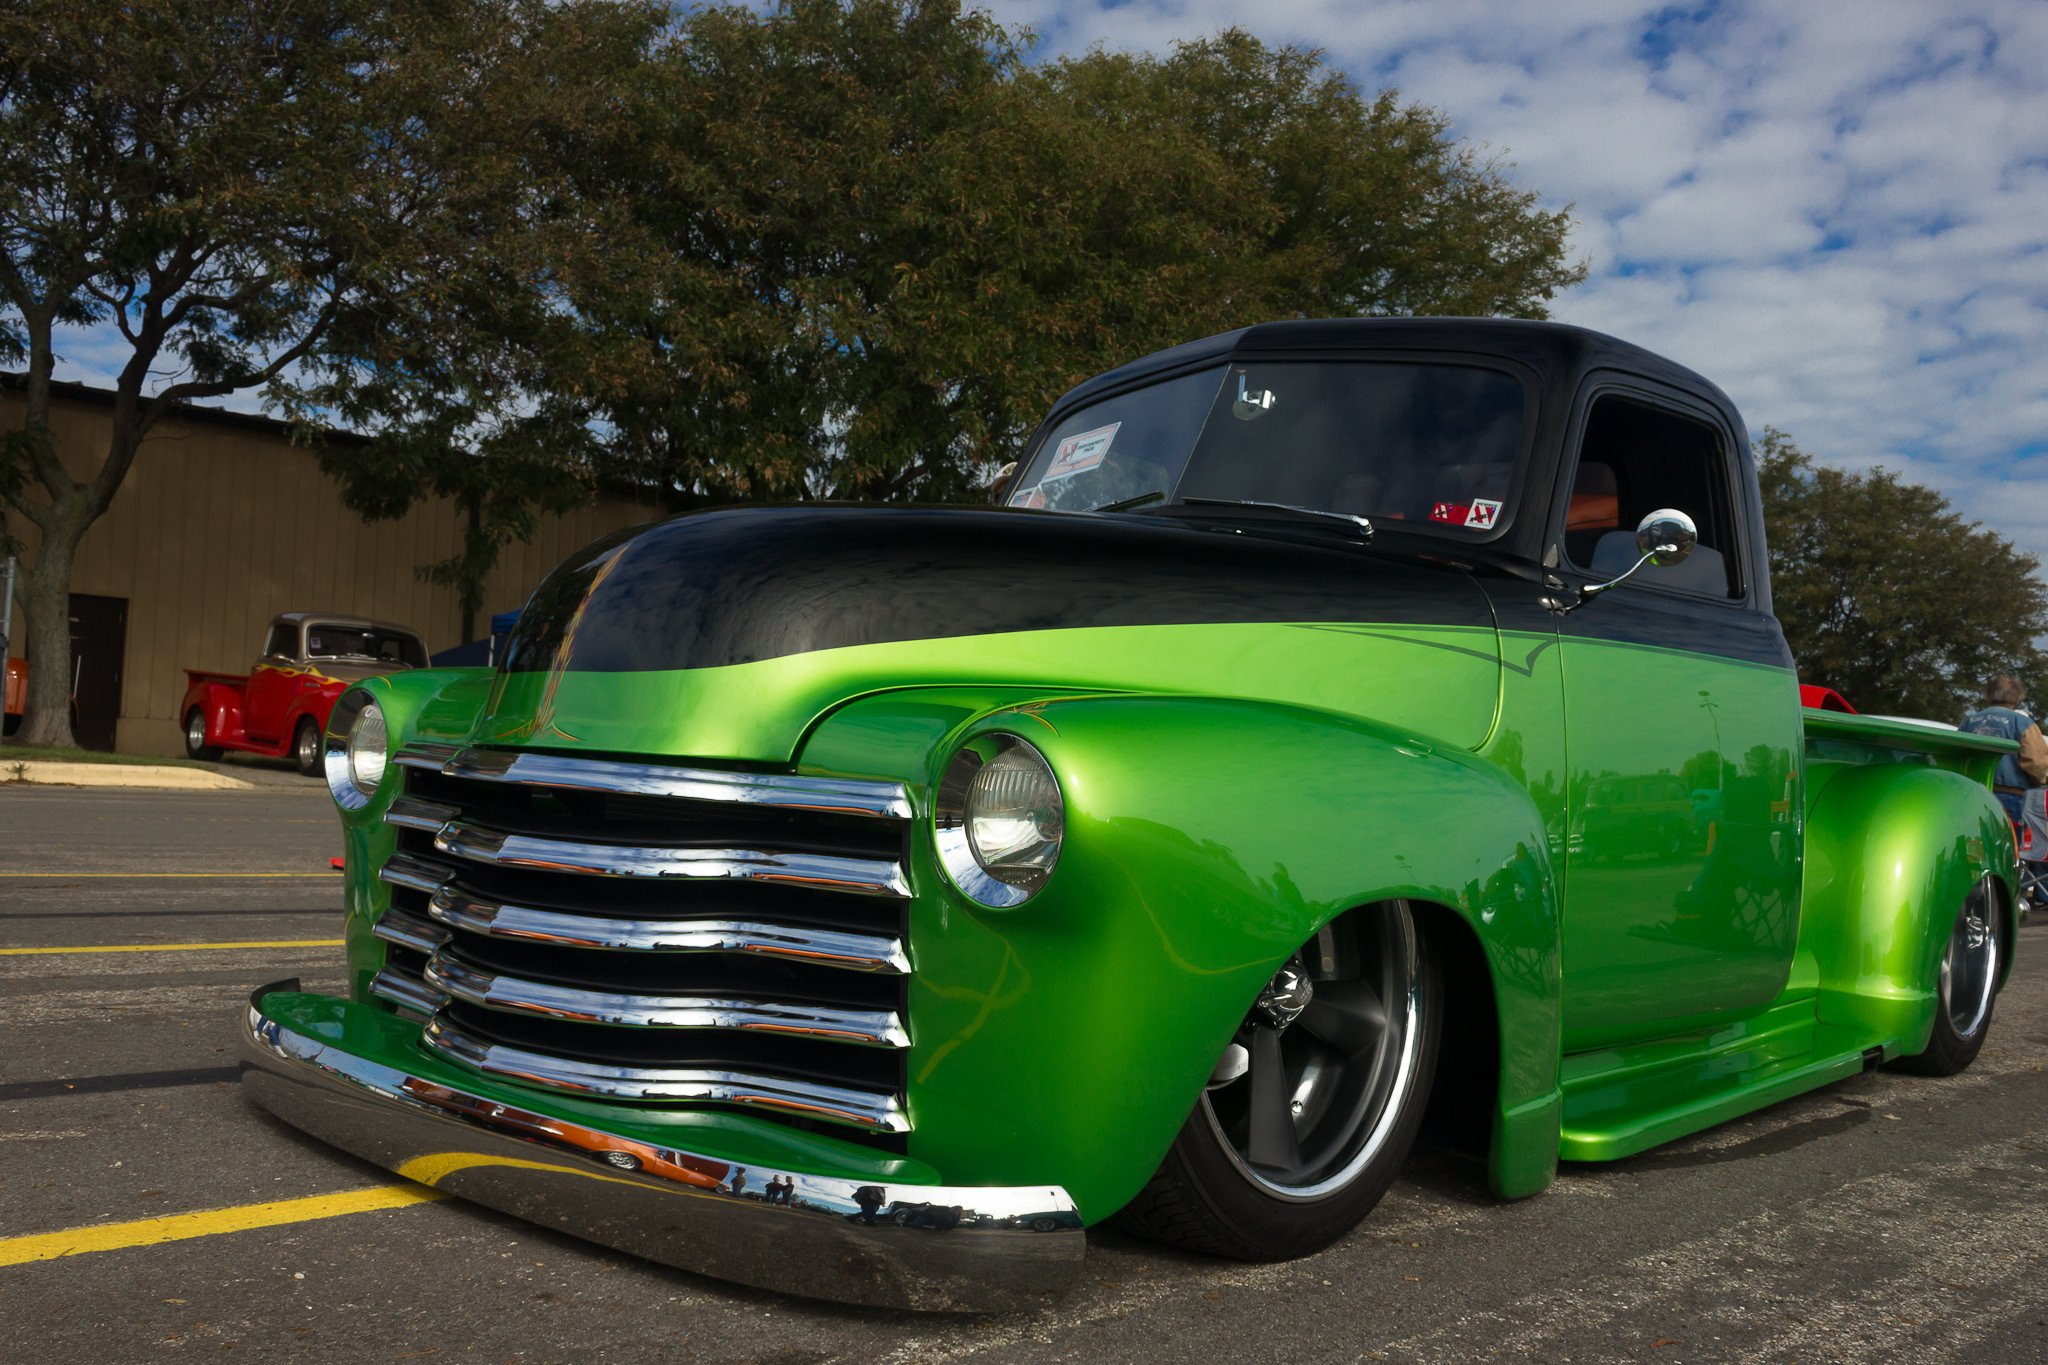 1957 Cars Restored Or Wallpapers Chevrolet Chevy Old Classic Custom Cars Truck Pickup